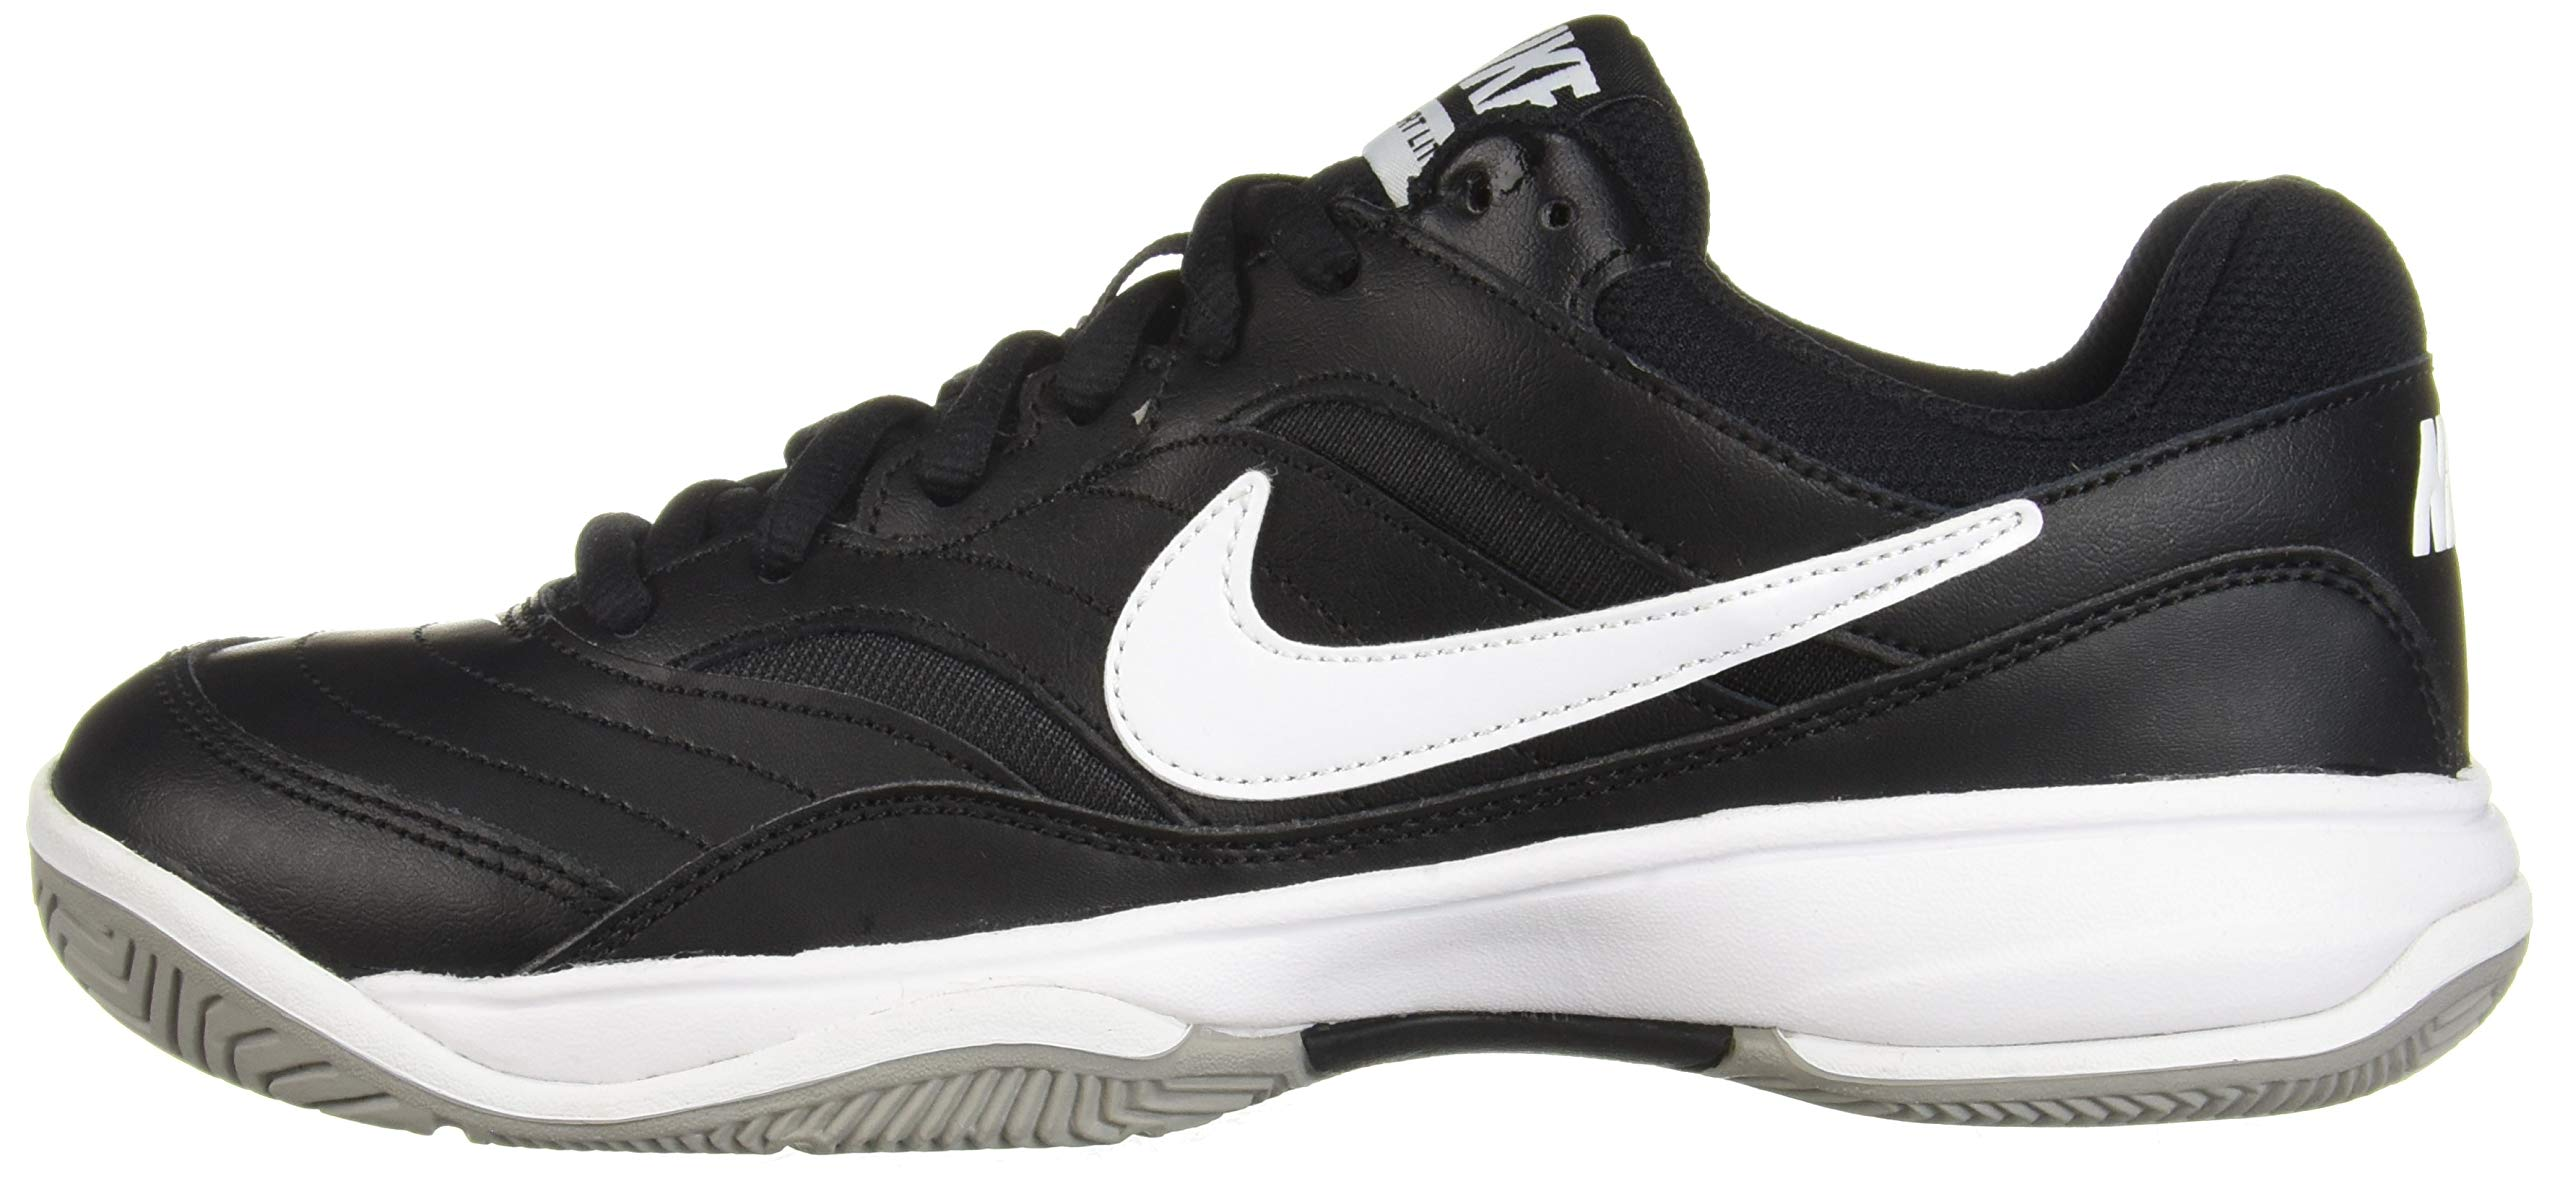 NIKE Men's Court Lite Athletic Shoe, Black/White/Medium Grey, 7.5 Regular US by Nike (Image #5)